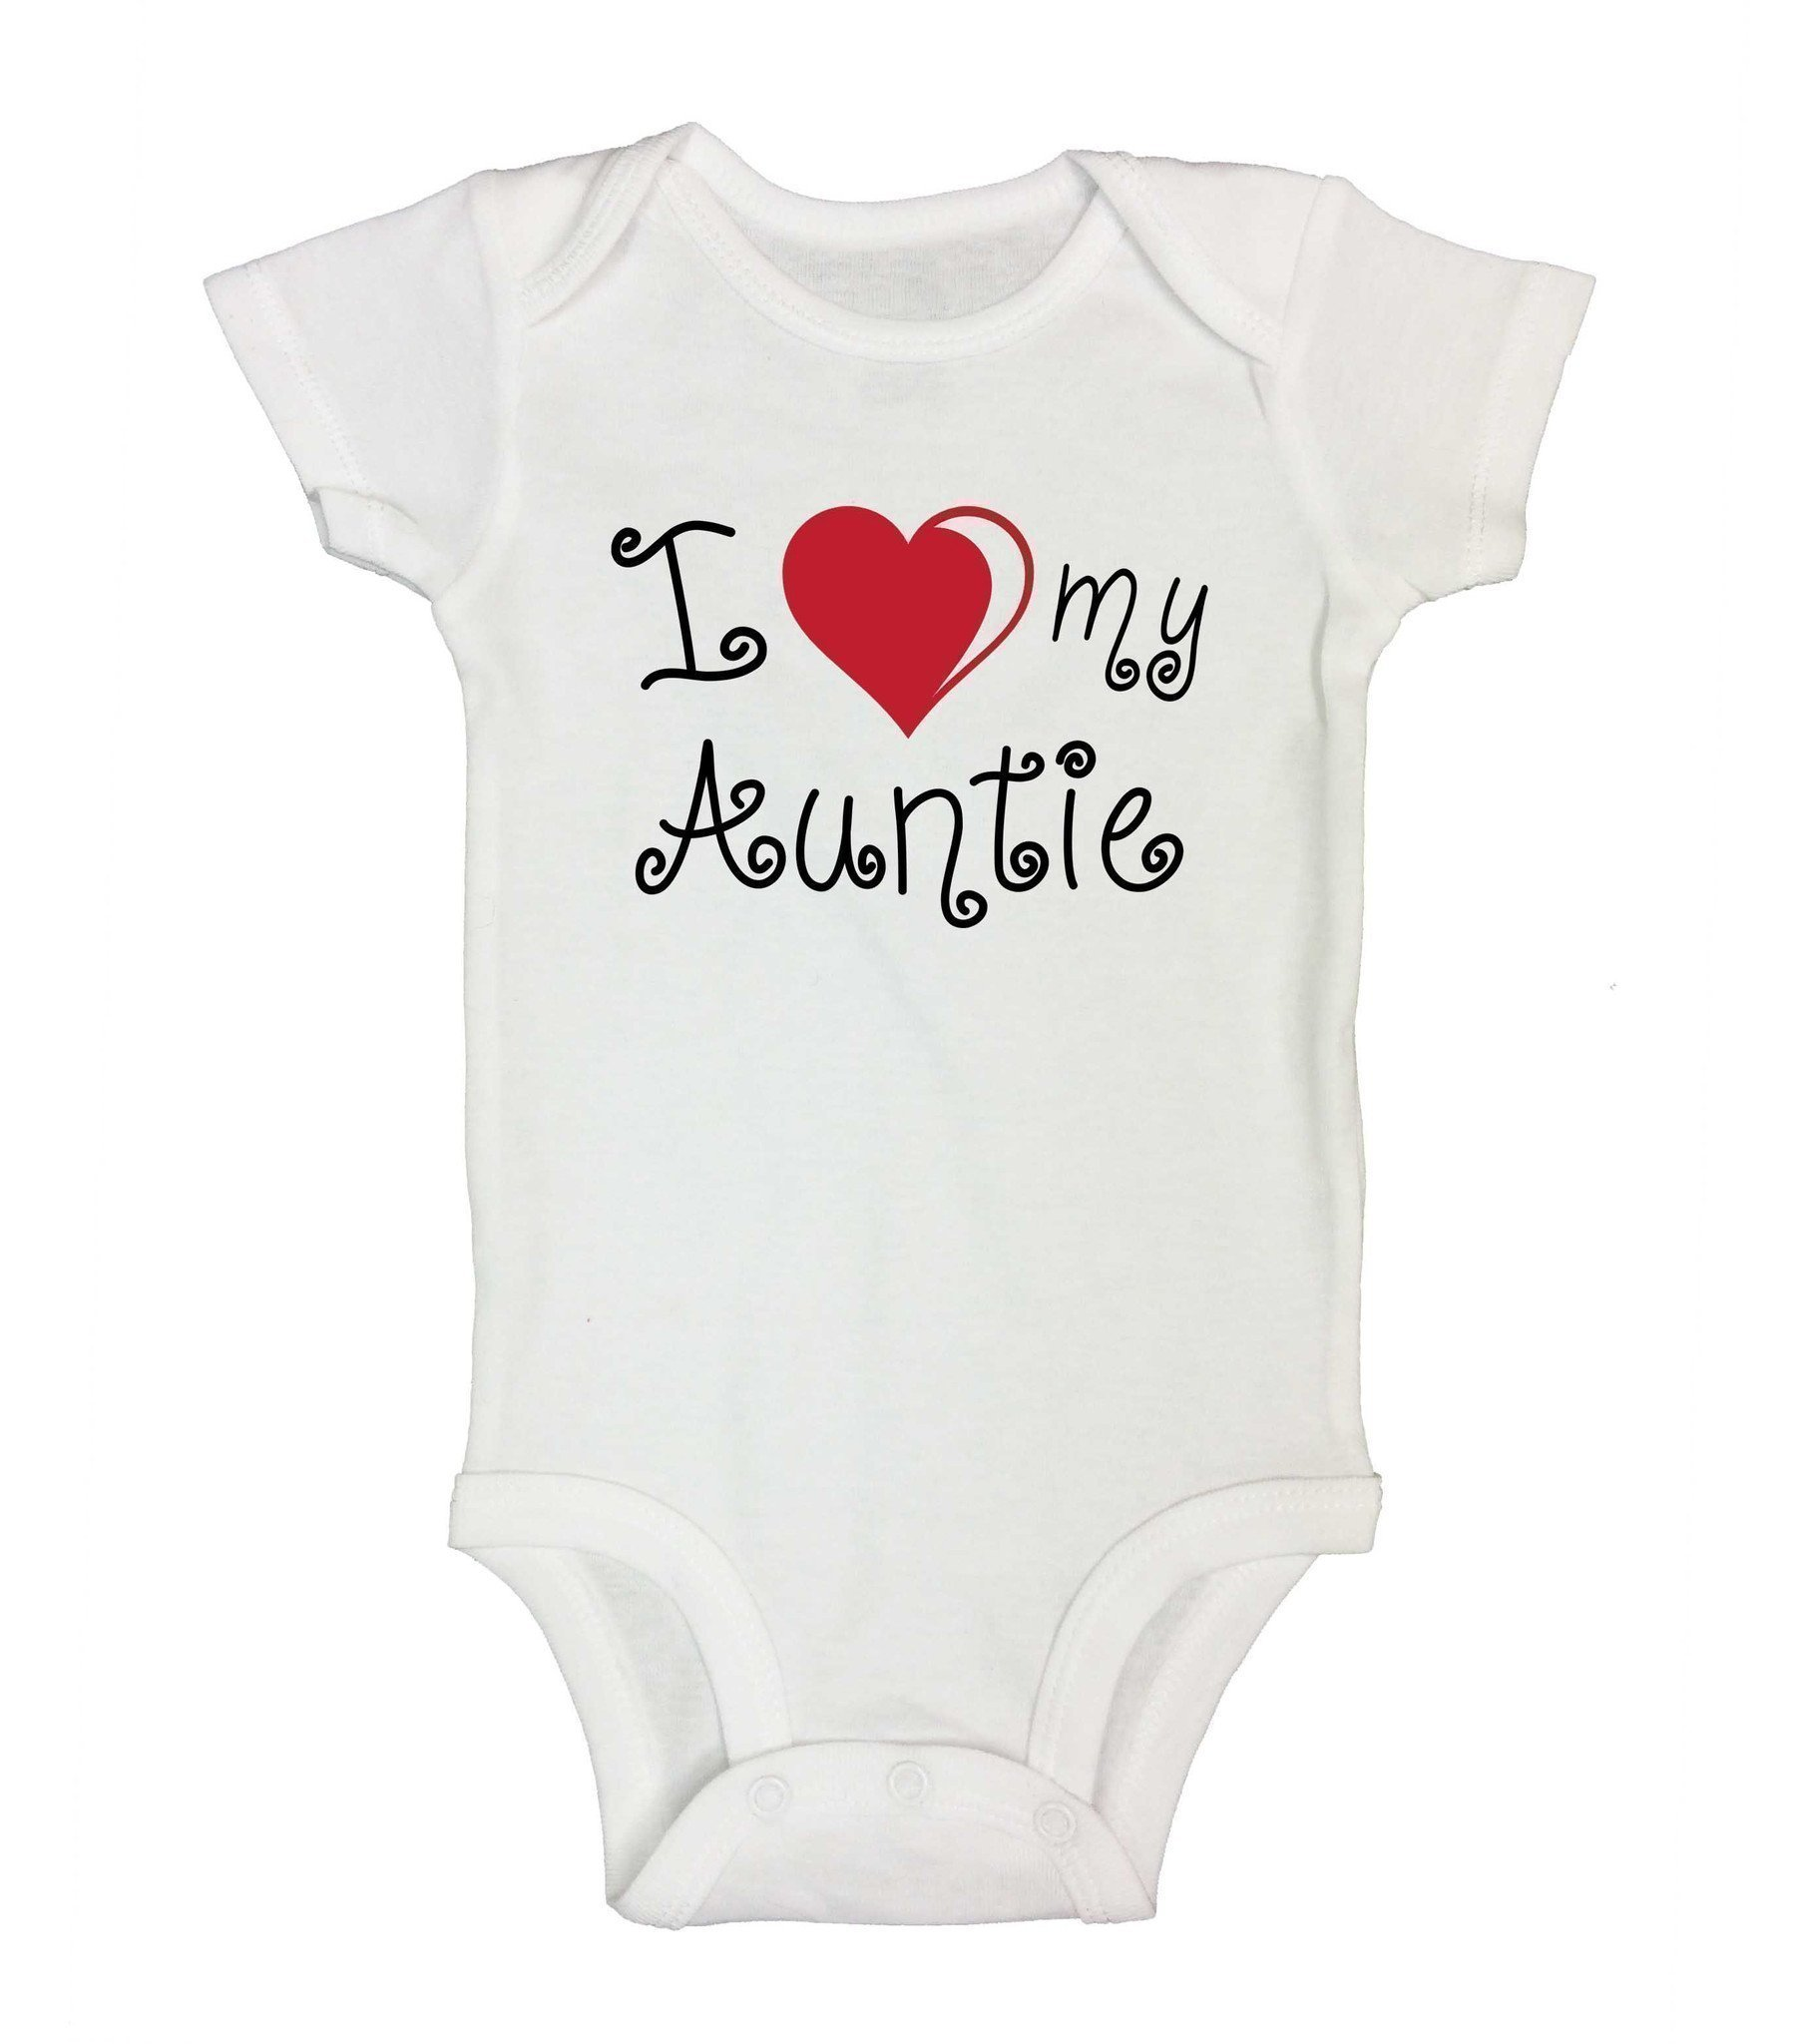 30c103479 I Love My Auntie Funny Kids Onesie | Products | Onesies, Funny kids ...